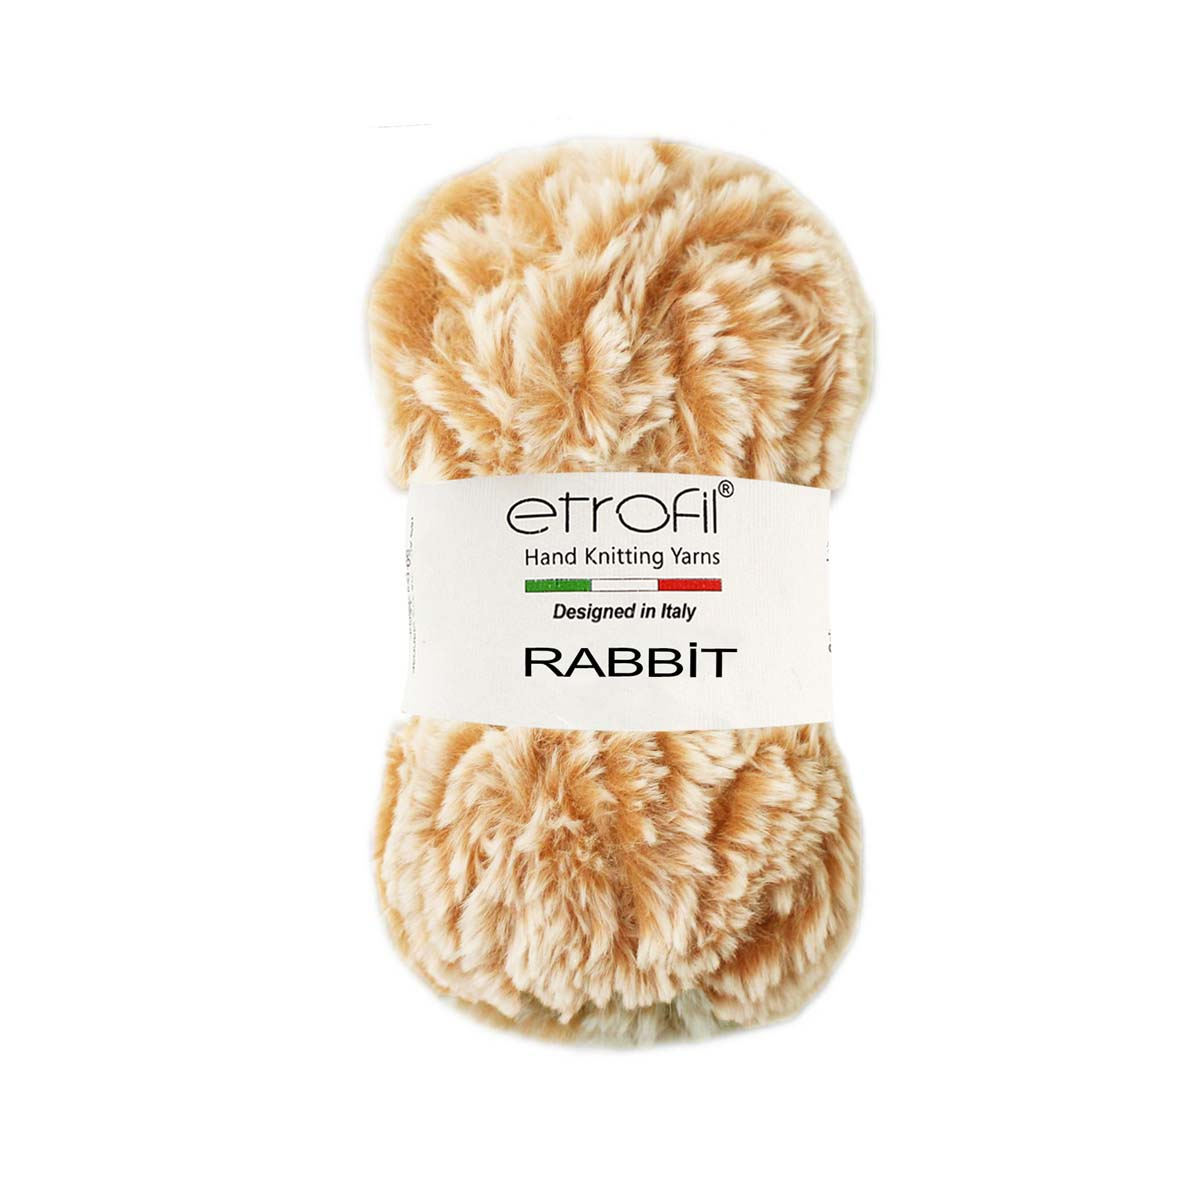 Etrofil Rabbit - 70715